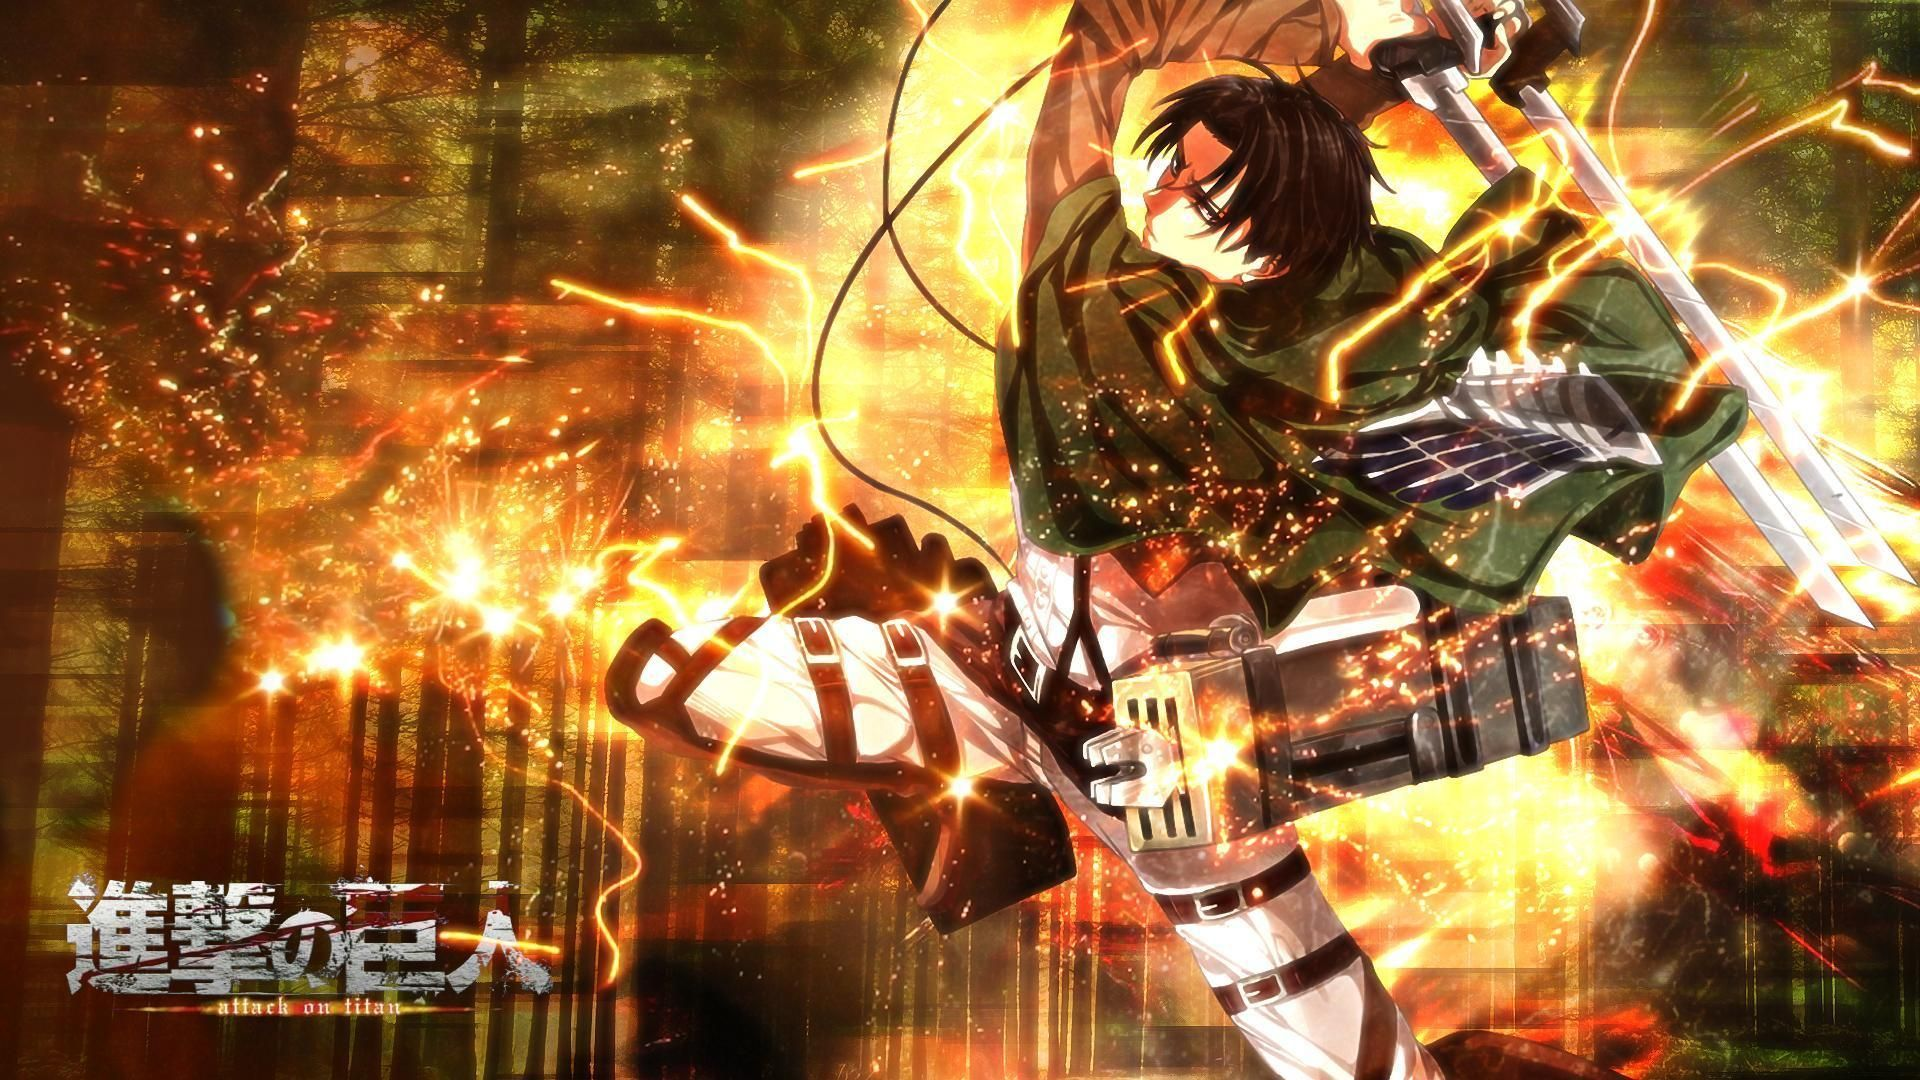 Attack On Titan Wallpapers Pemandangan Anime Pemandangan Attack On Titan